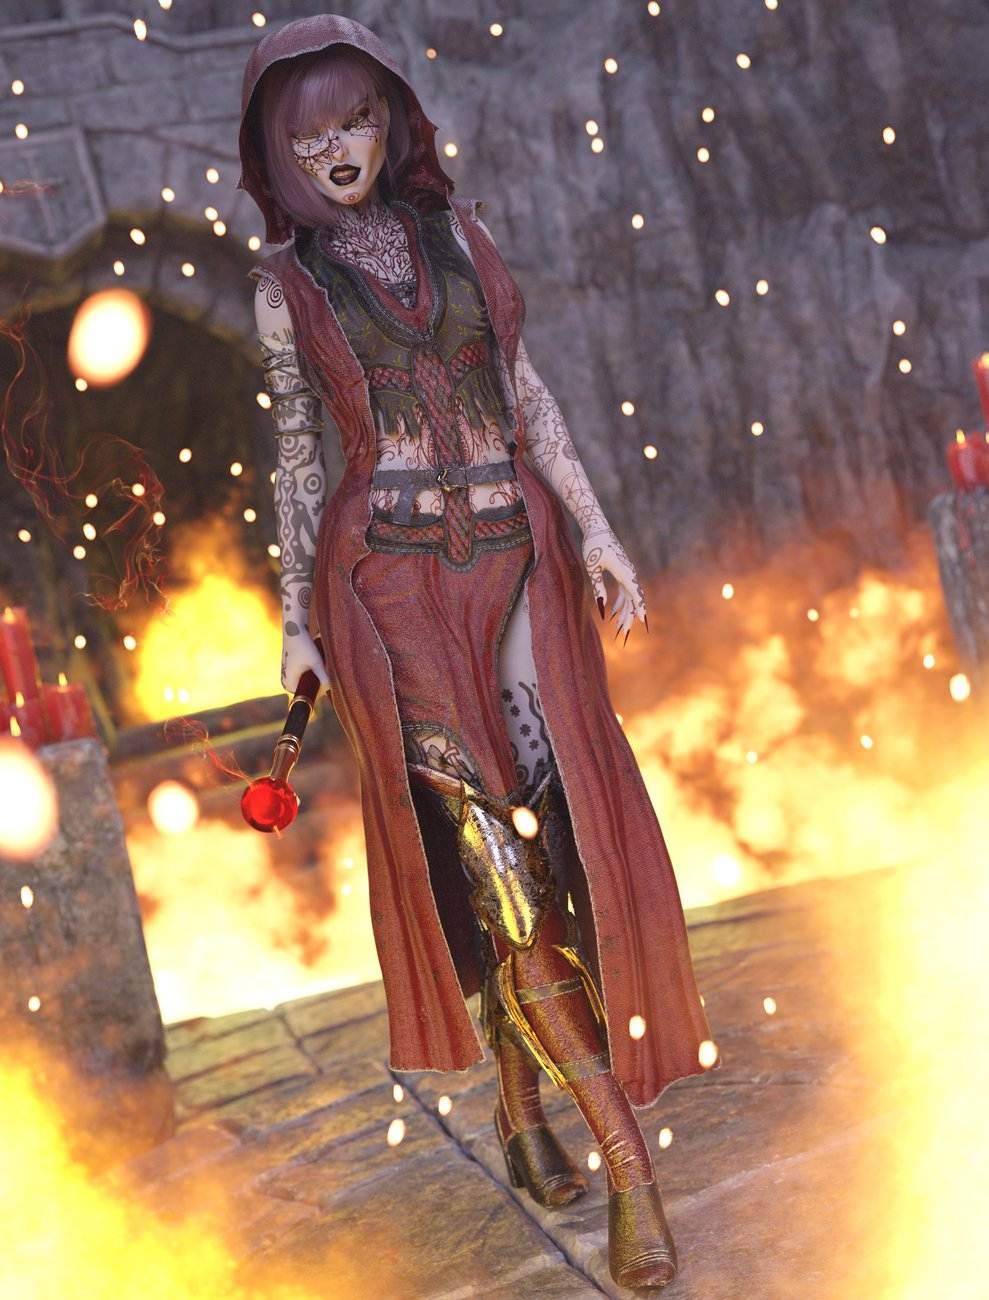 dForce Diabolus Outfit for Genesis 8 and 8.1 Female by: Sixus1 Media, 3D Models by Daz 3D